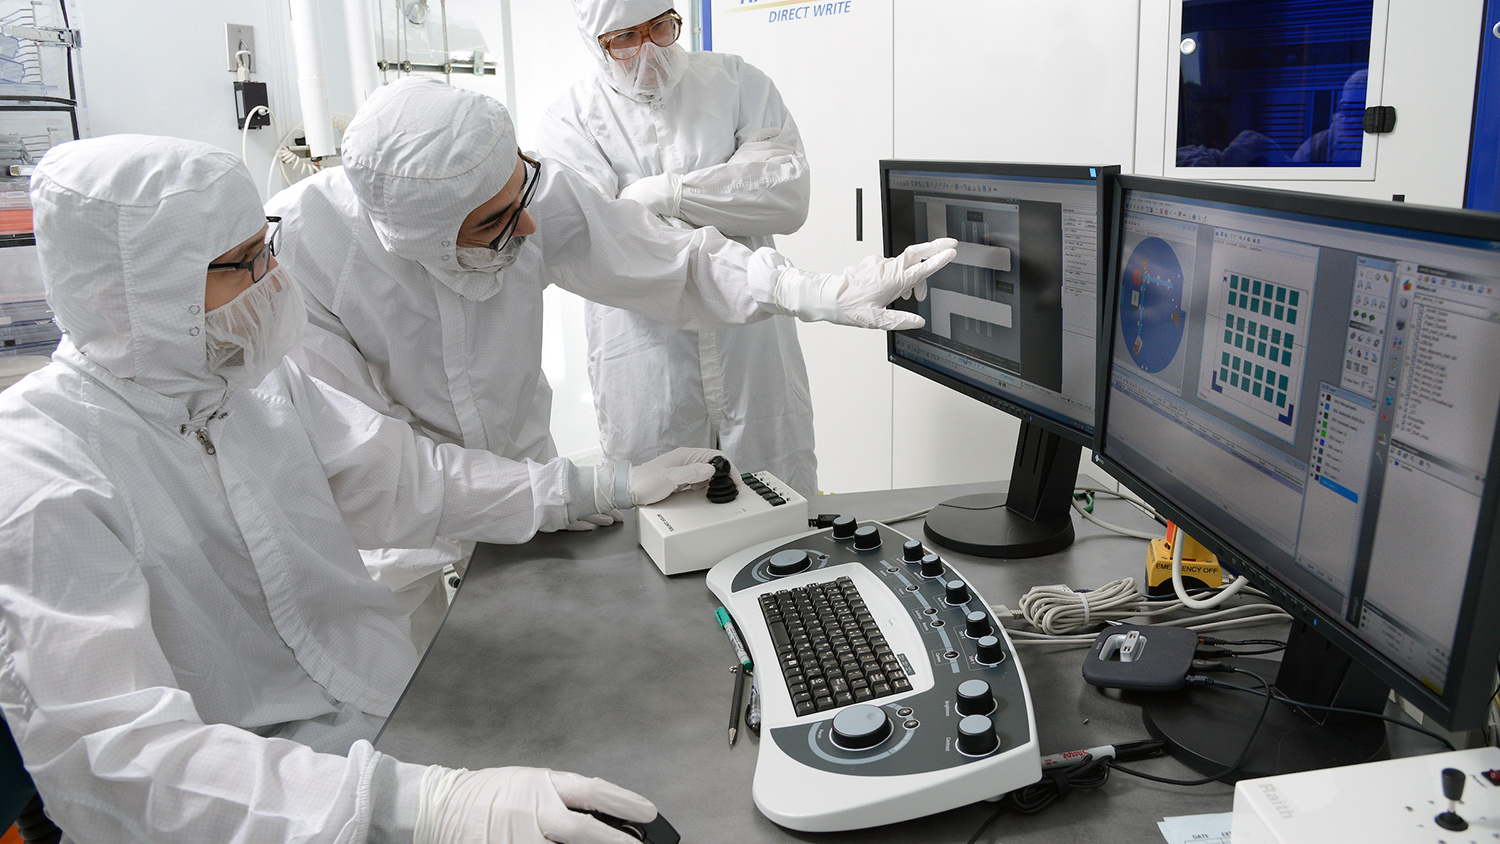 Three graduate students at work in the Microelectronics Research/Teaching laboratory at the Monteith Research Center on Centennial Campus.